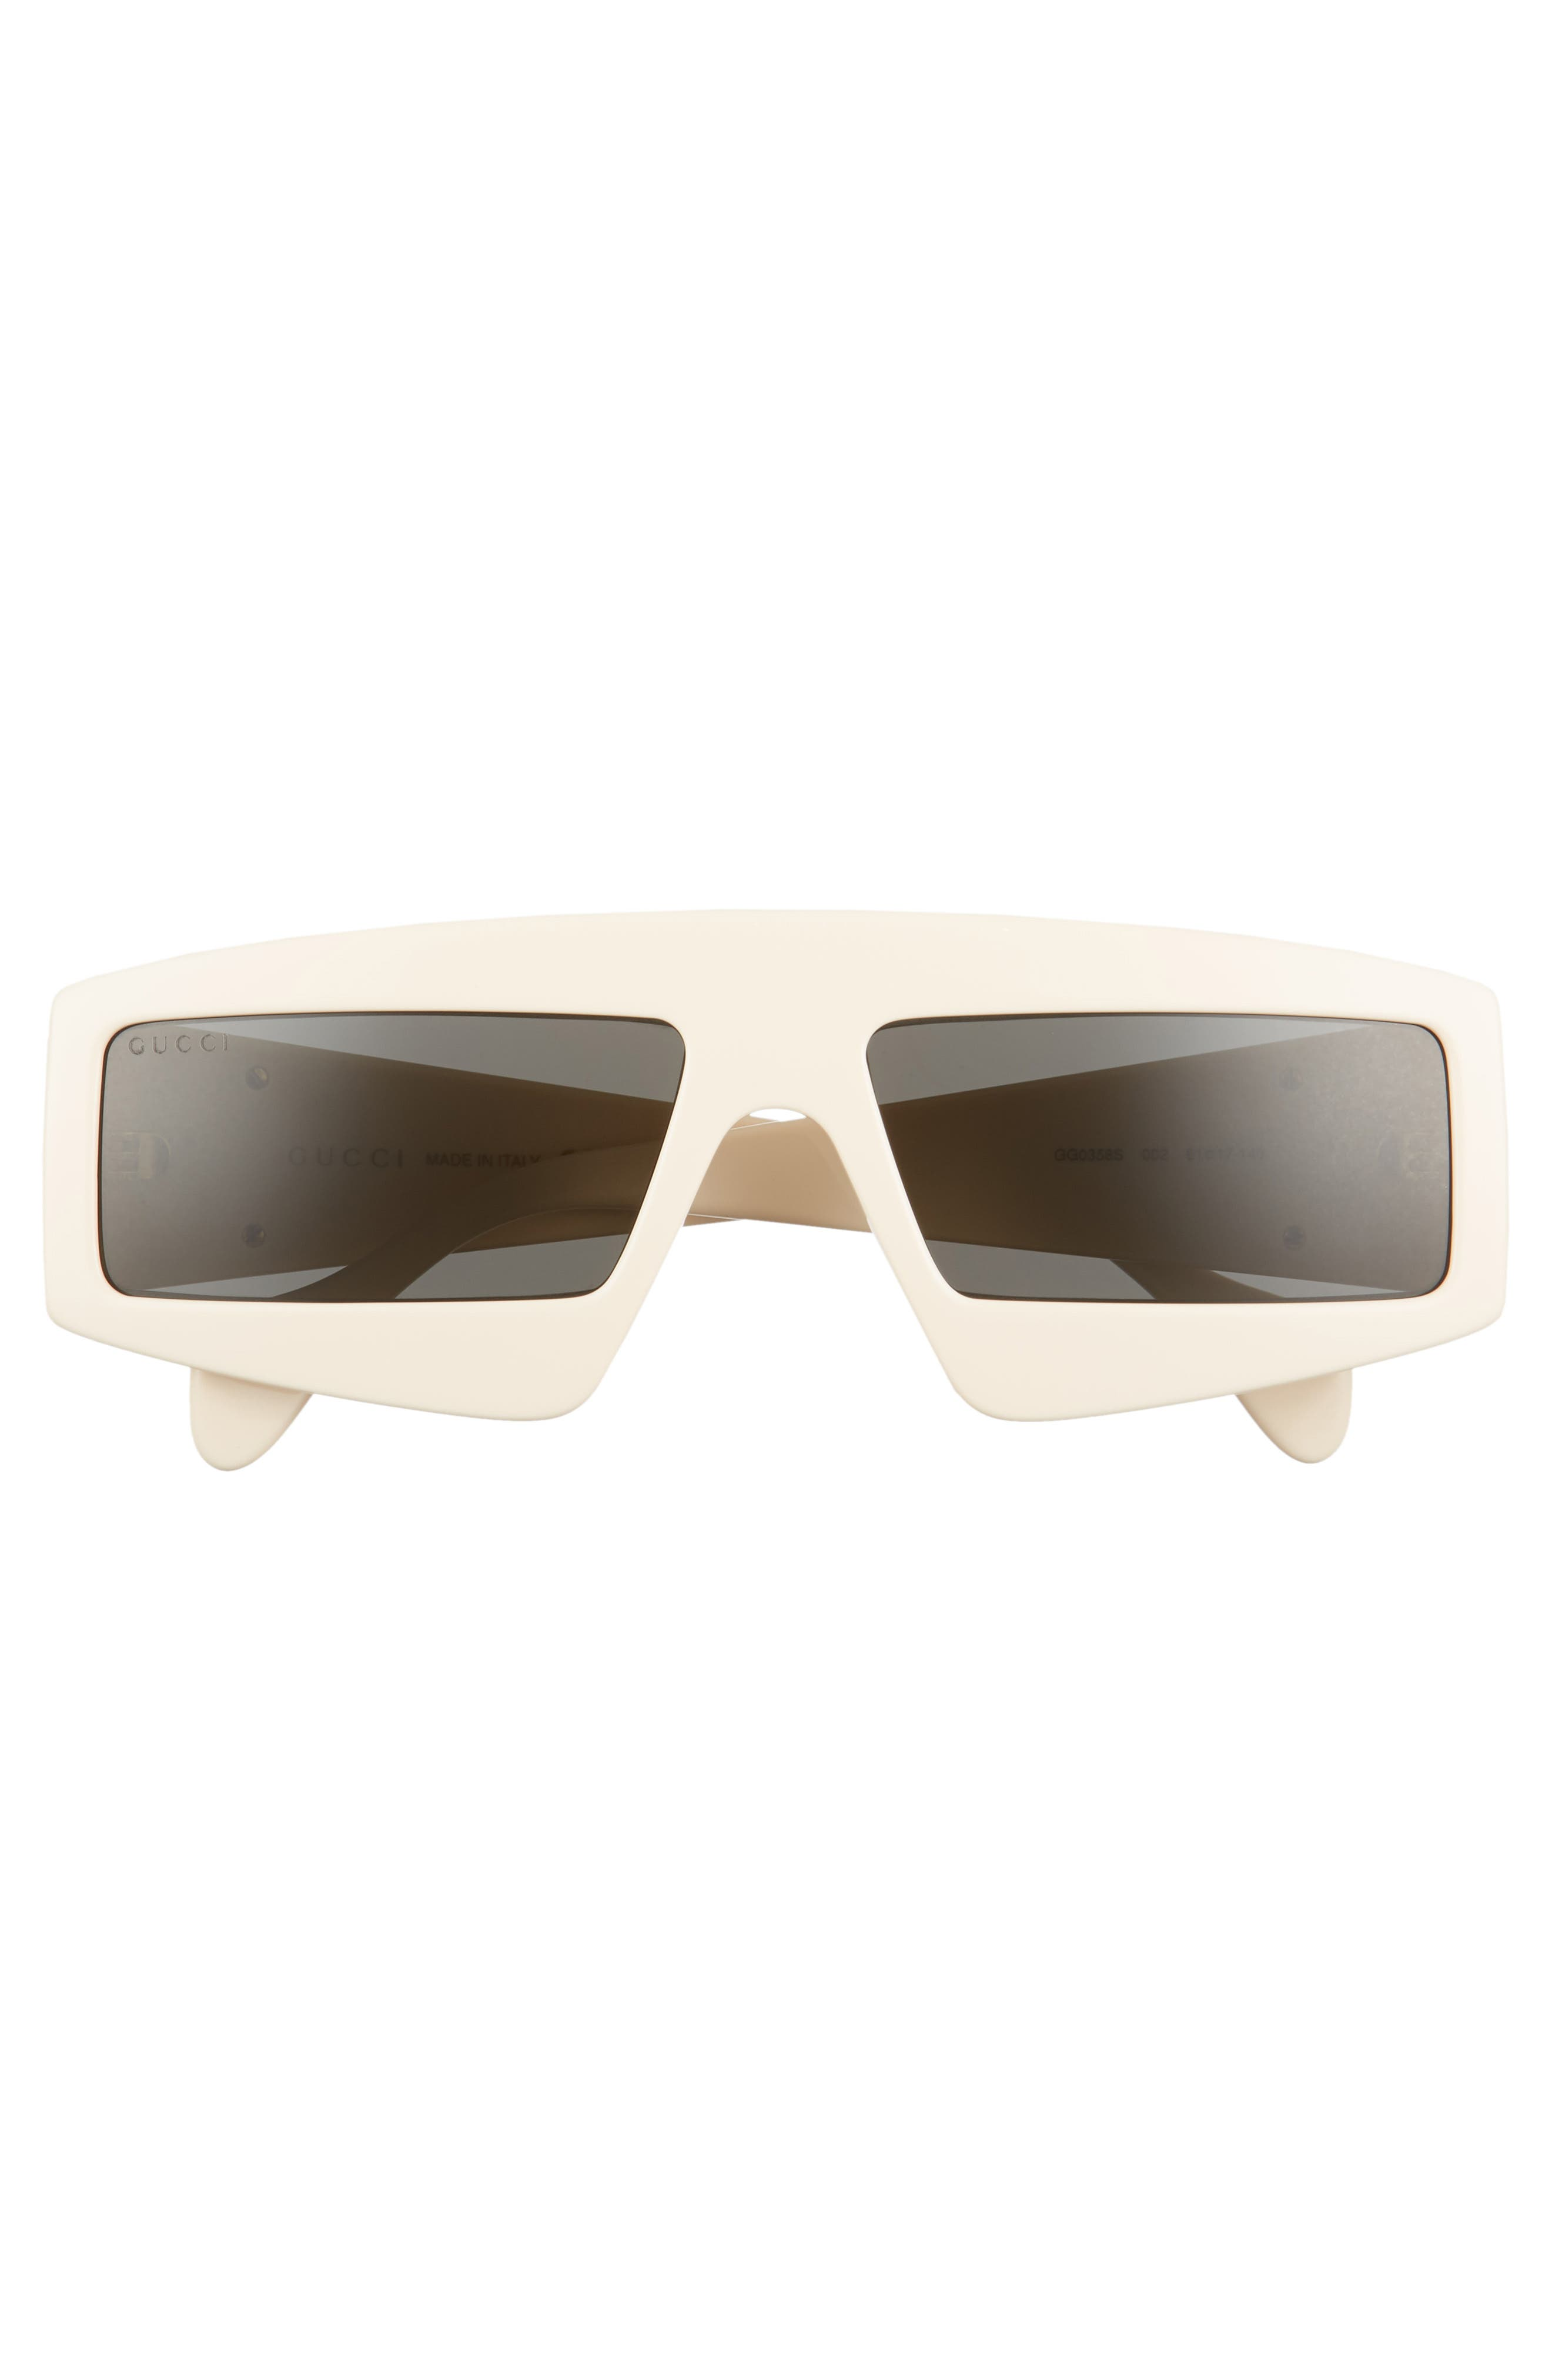 61mm Shield Sunglasses,                             Alternate thumbnail 3, color,                             IVORY